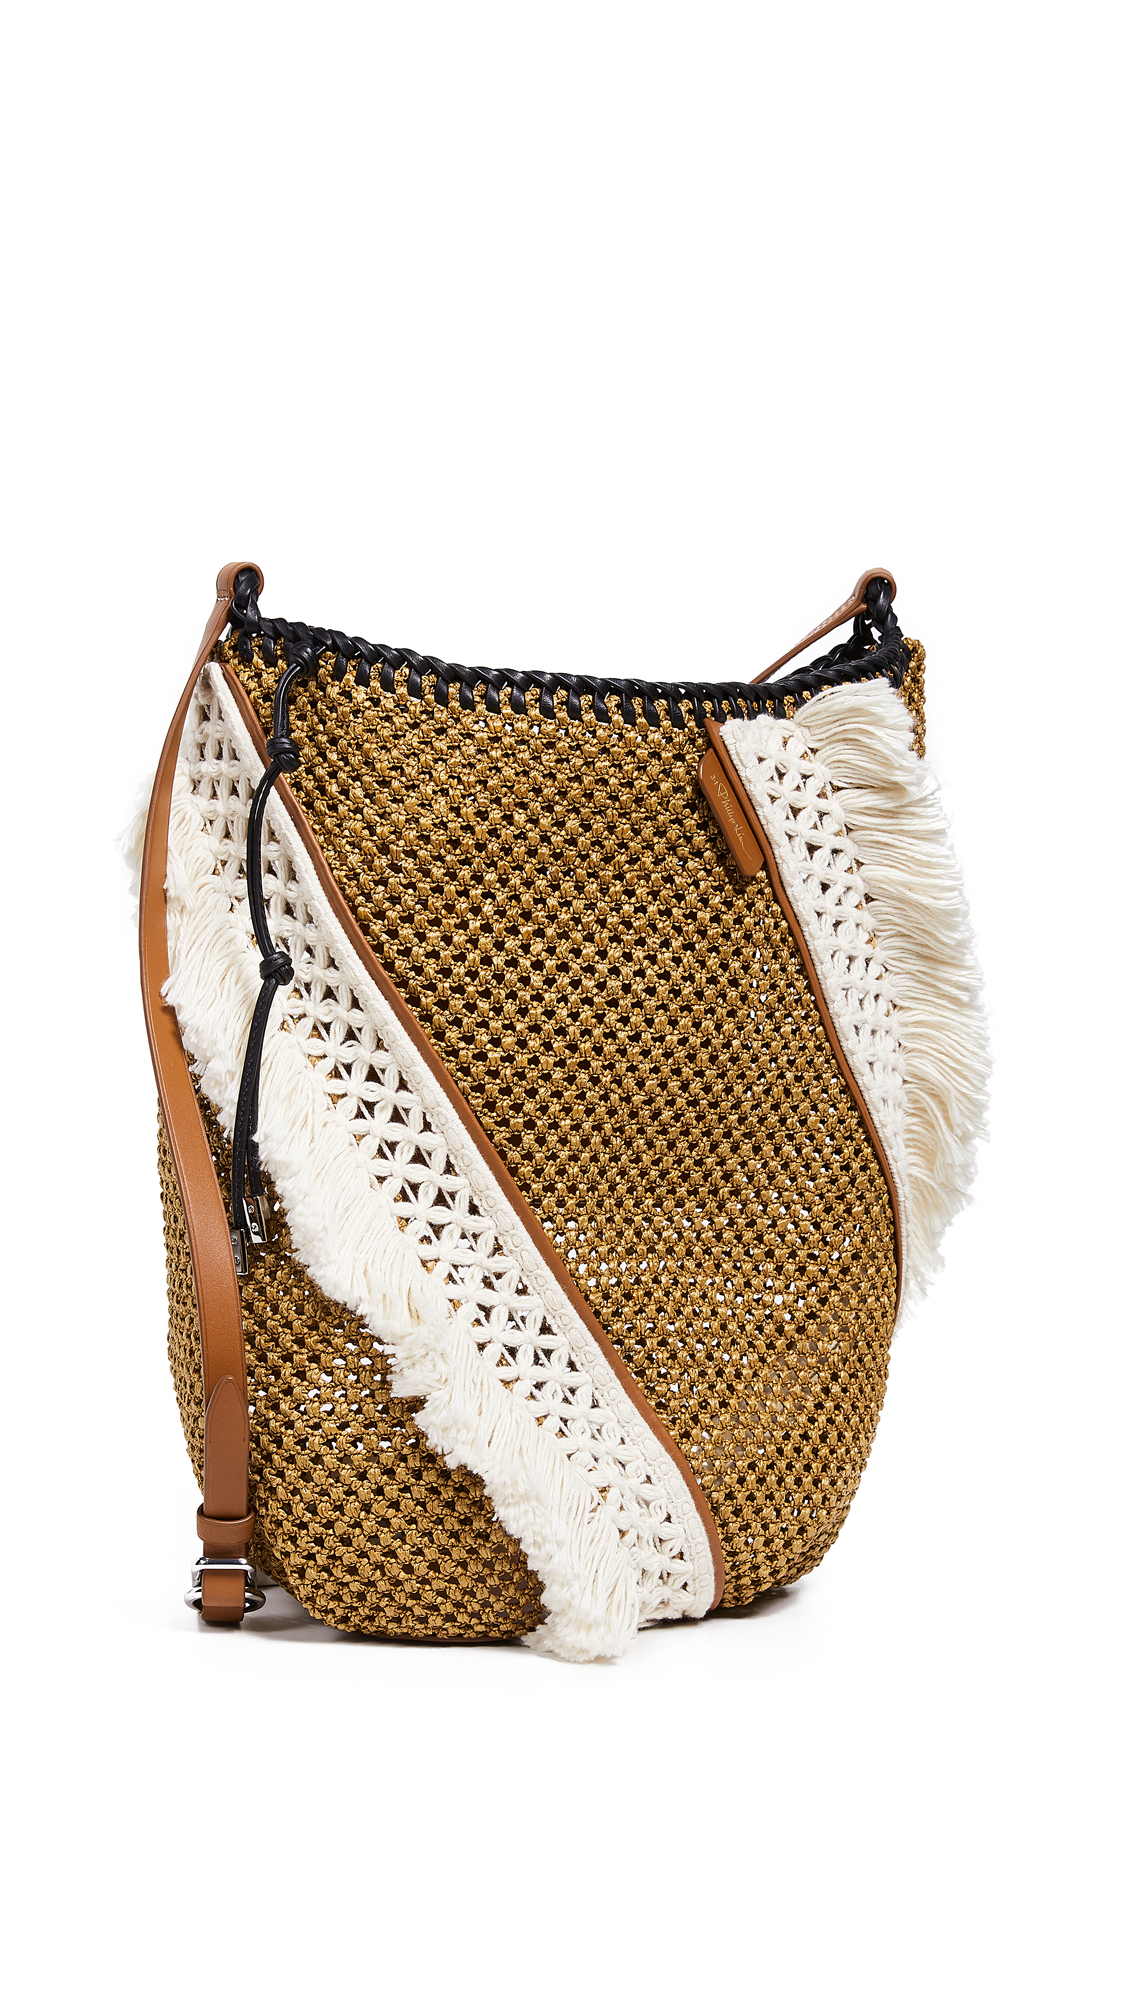 3.1 Phillip Lim Marlee Open Weave Bag With Fringe - Cognac